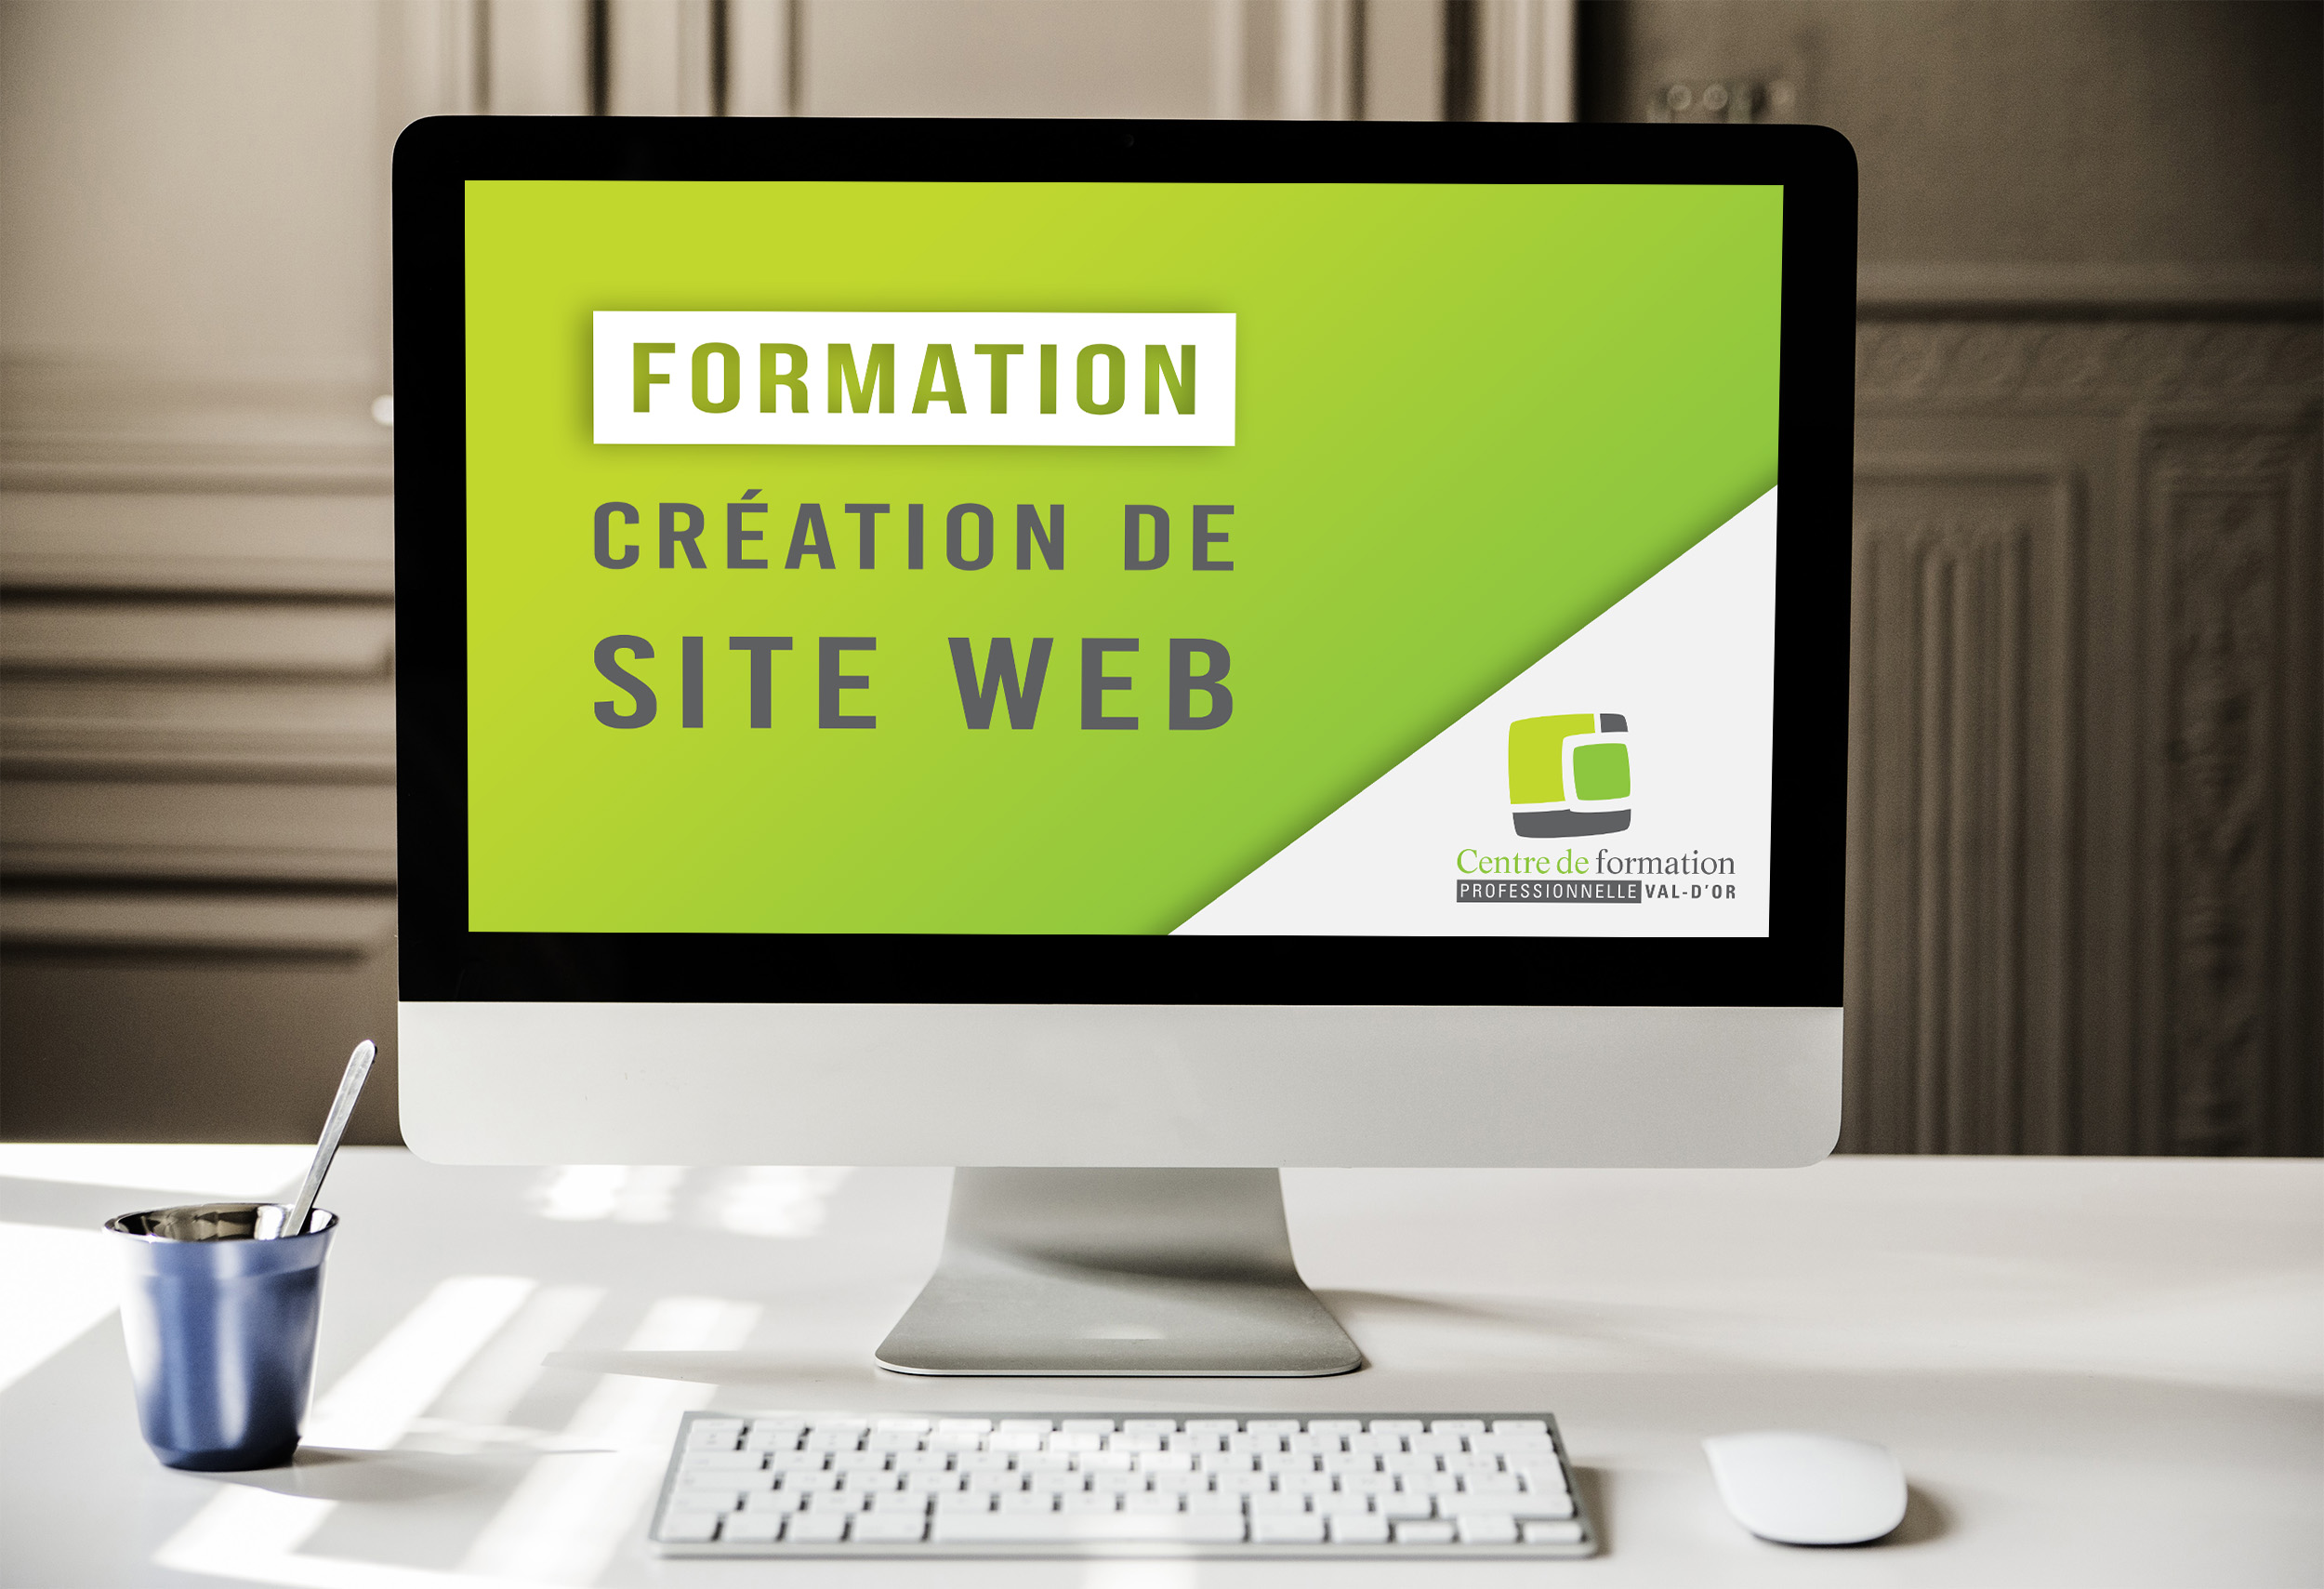 comment cr u00e9er un site web efficace